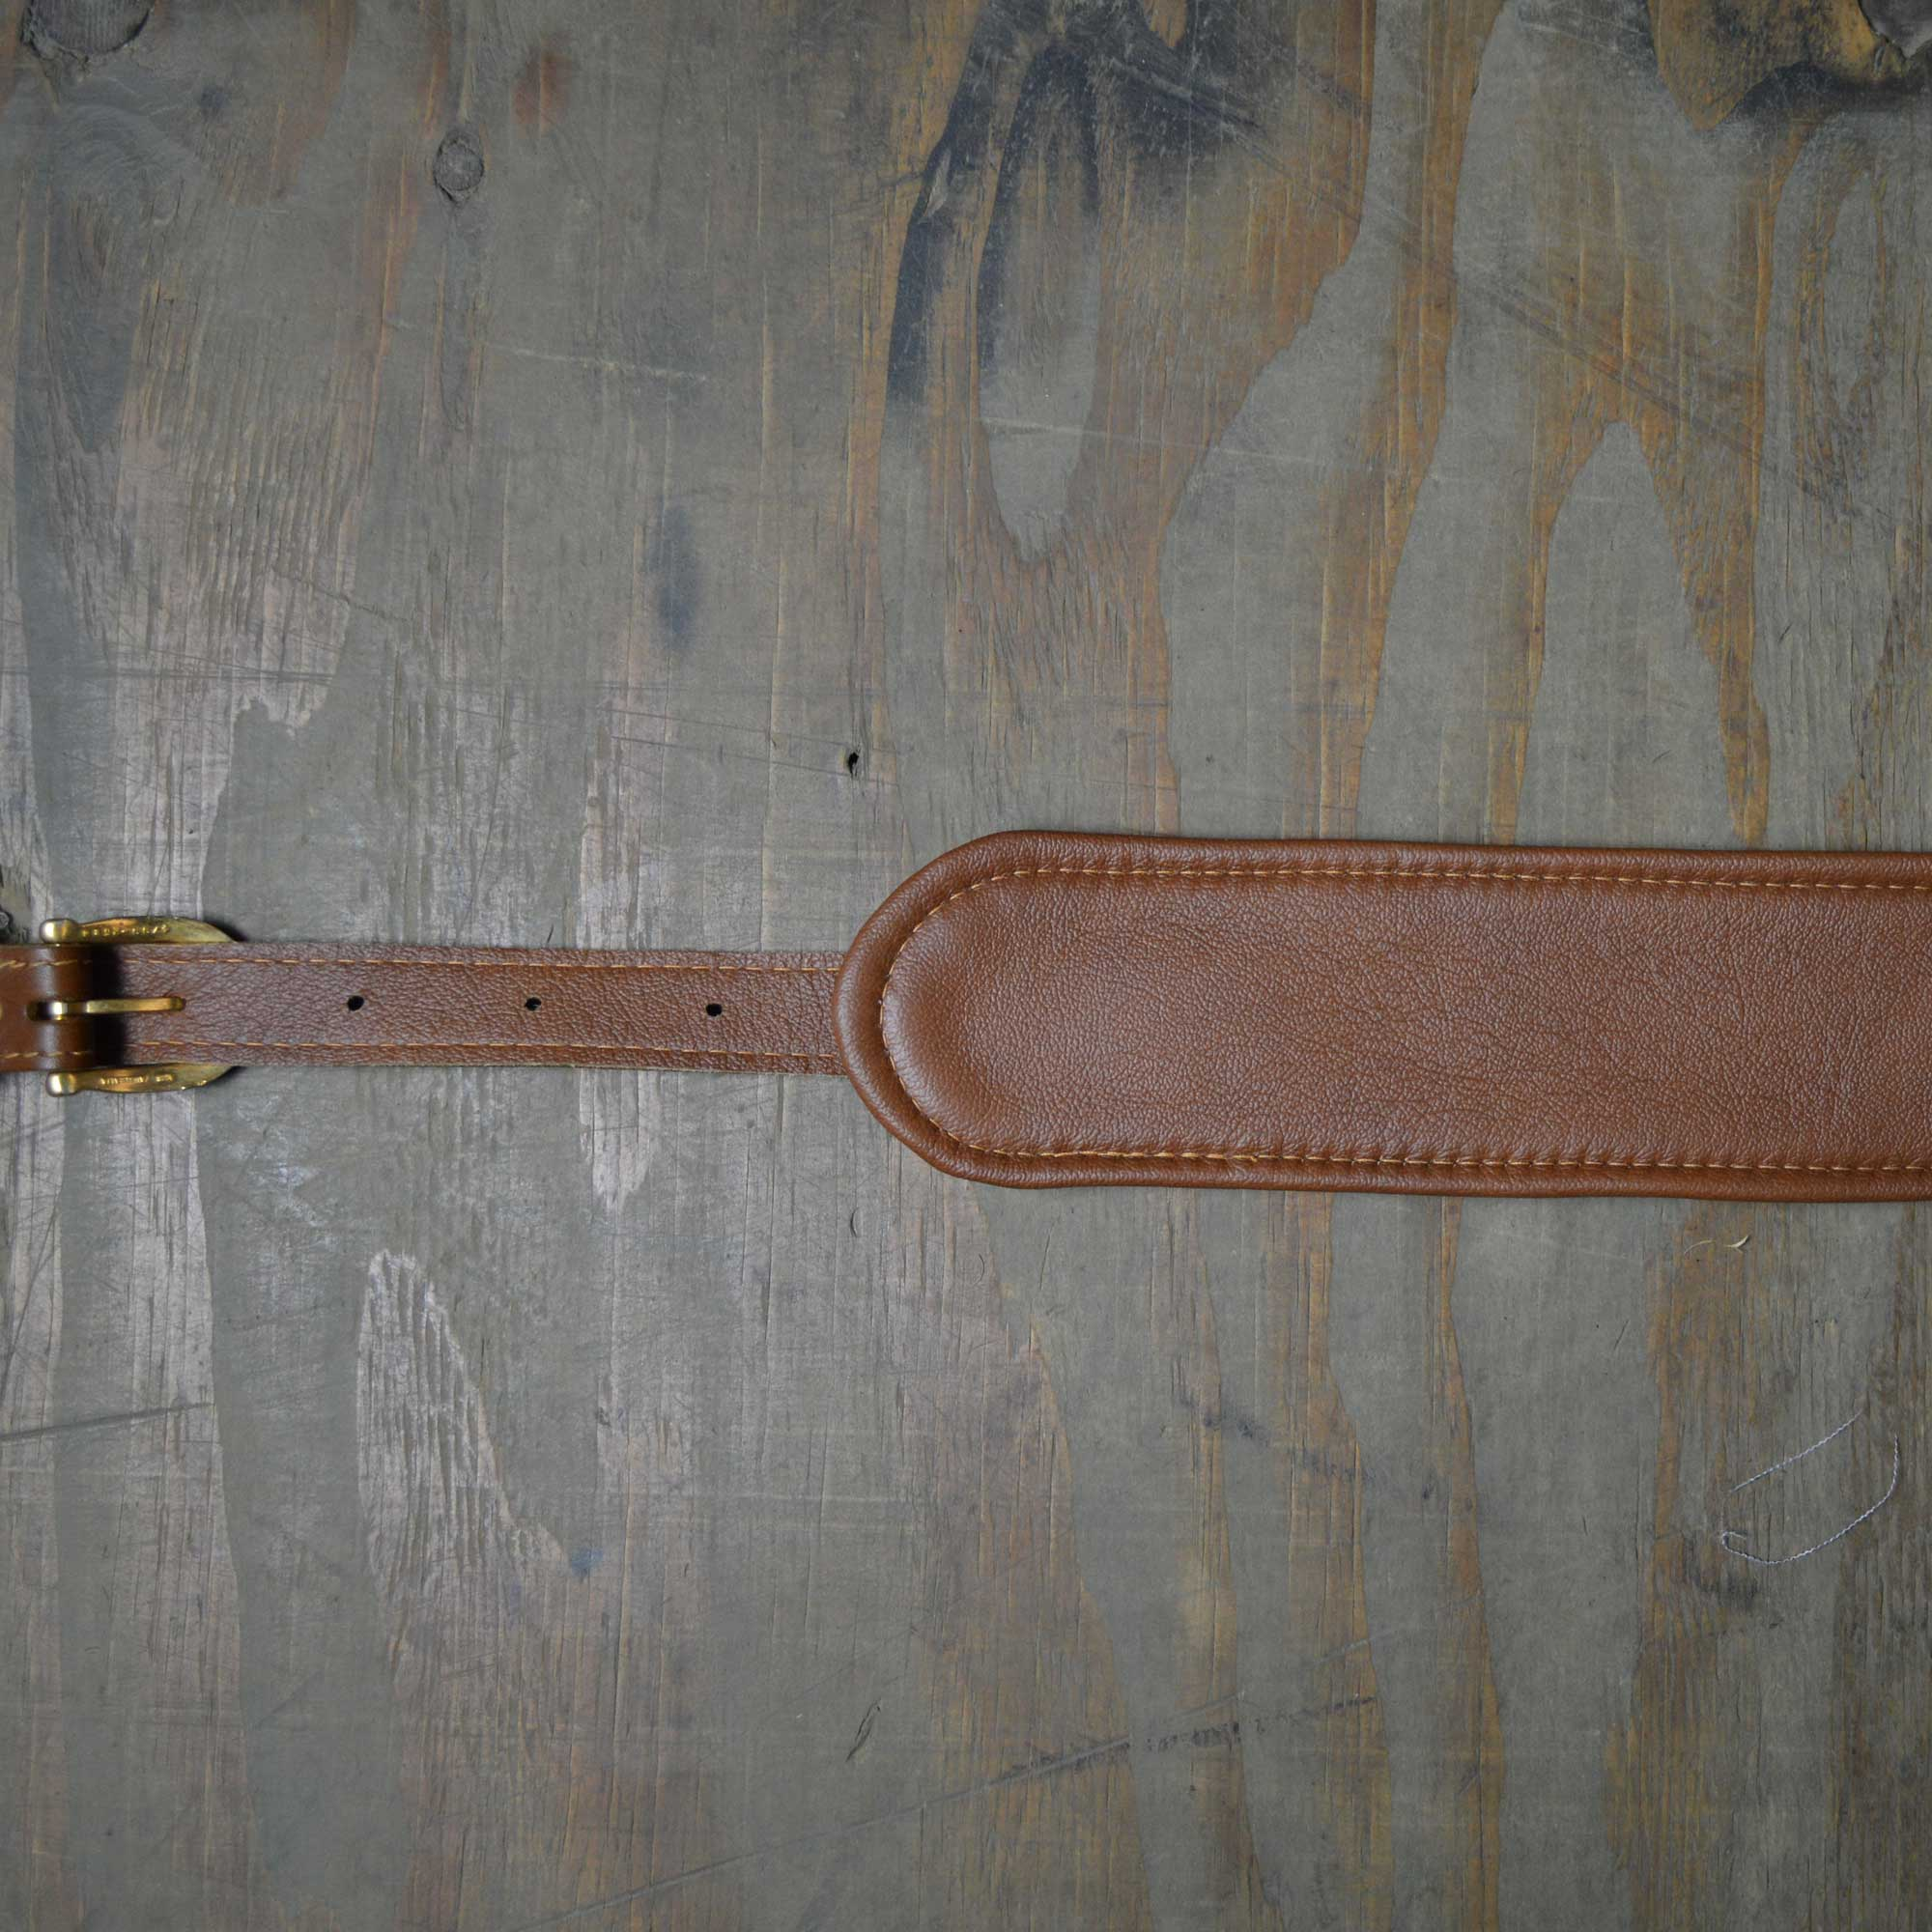 Vintage style guitar strap made with a topgrain leather top and an upholstery backing. Brown & Tan